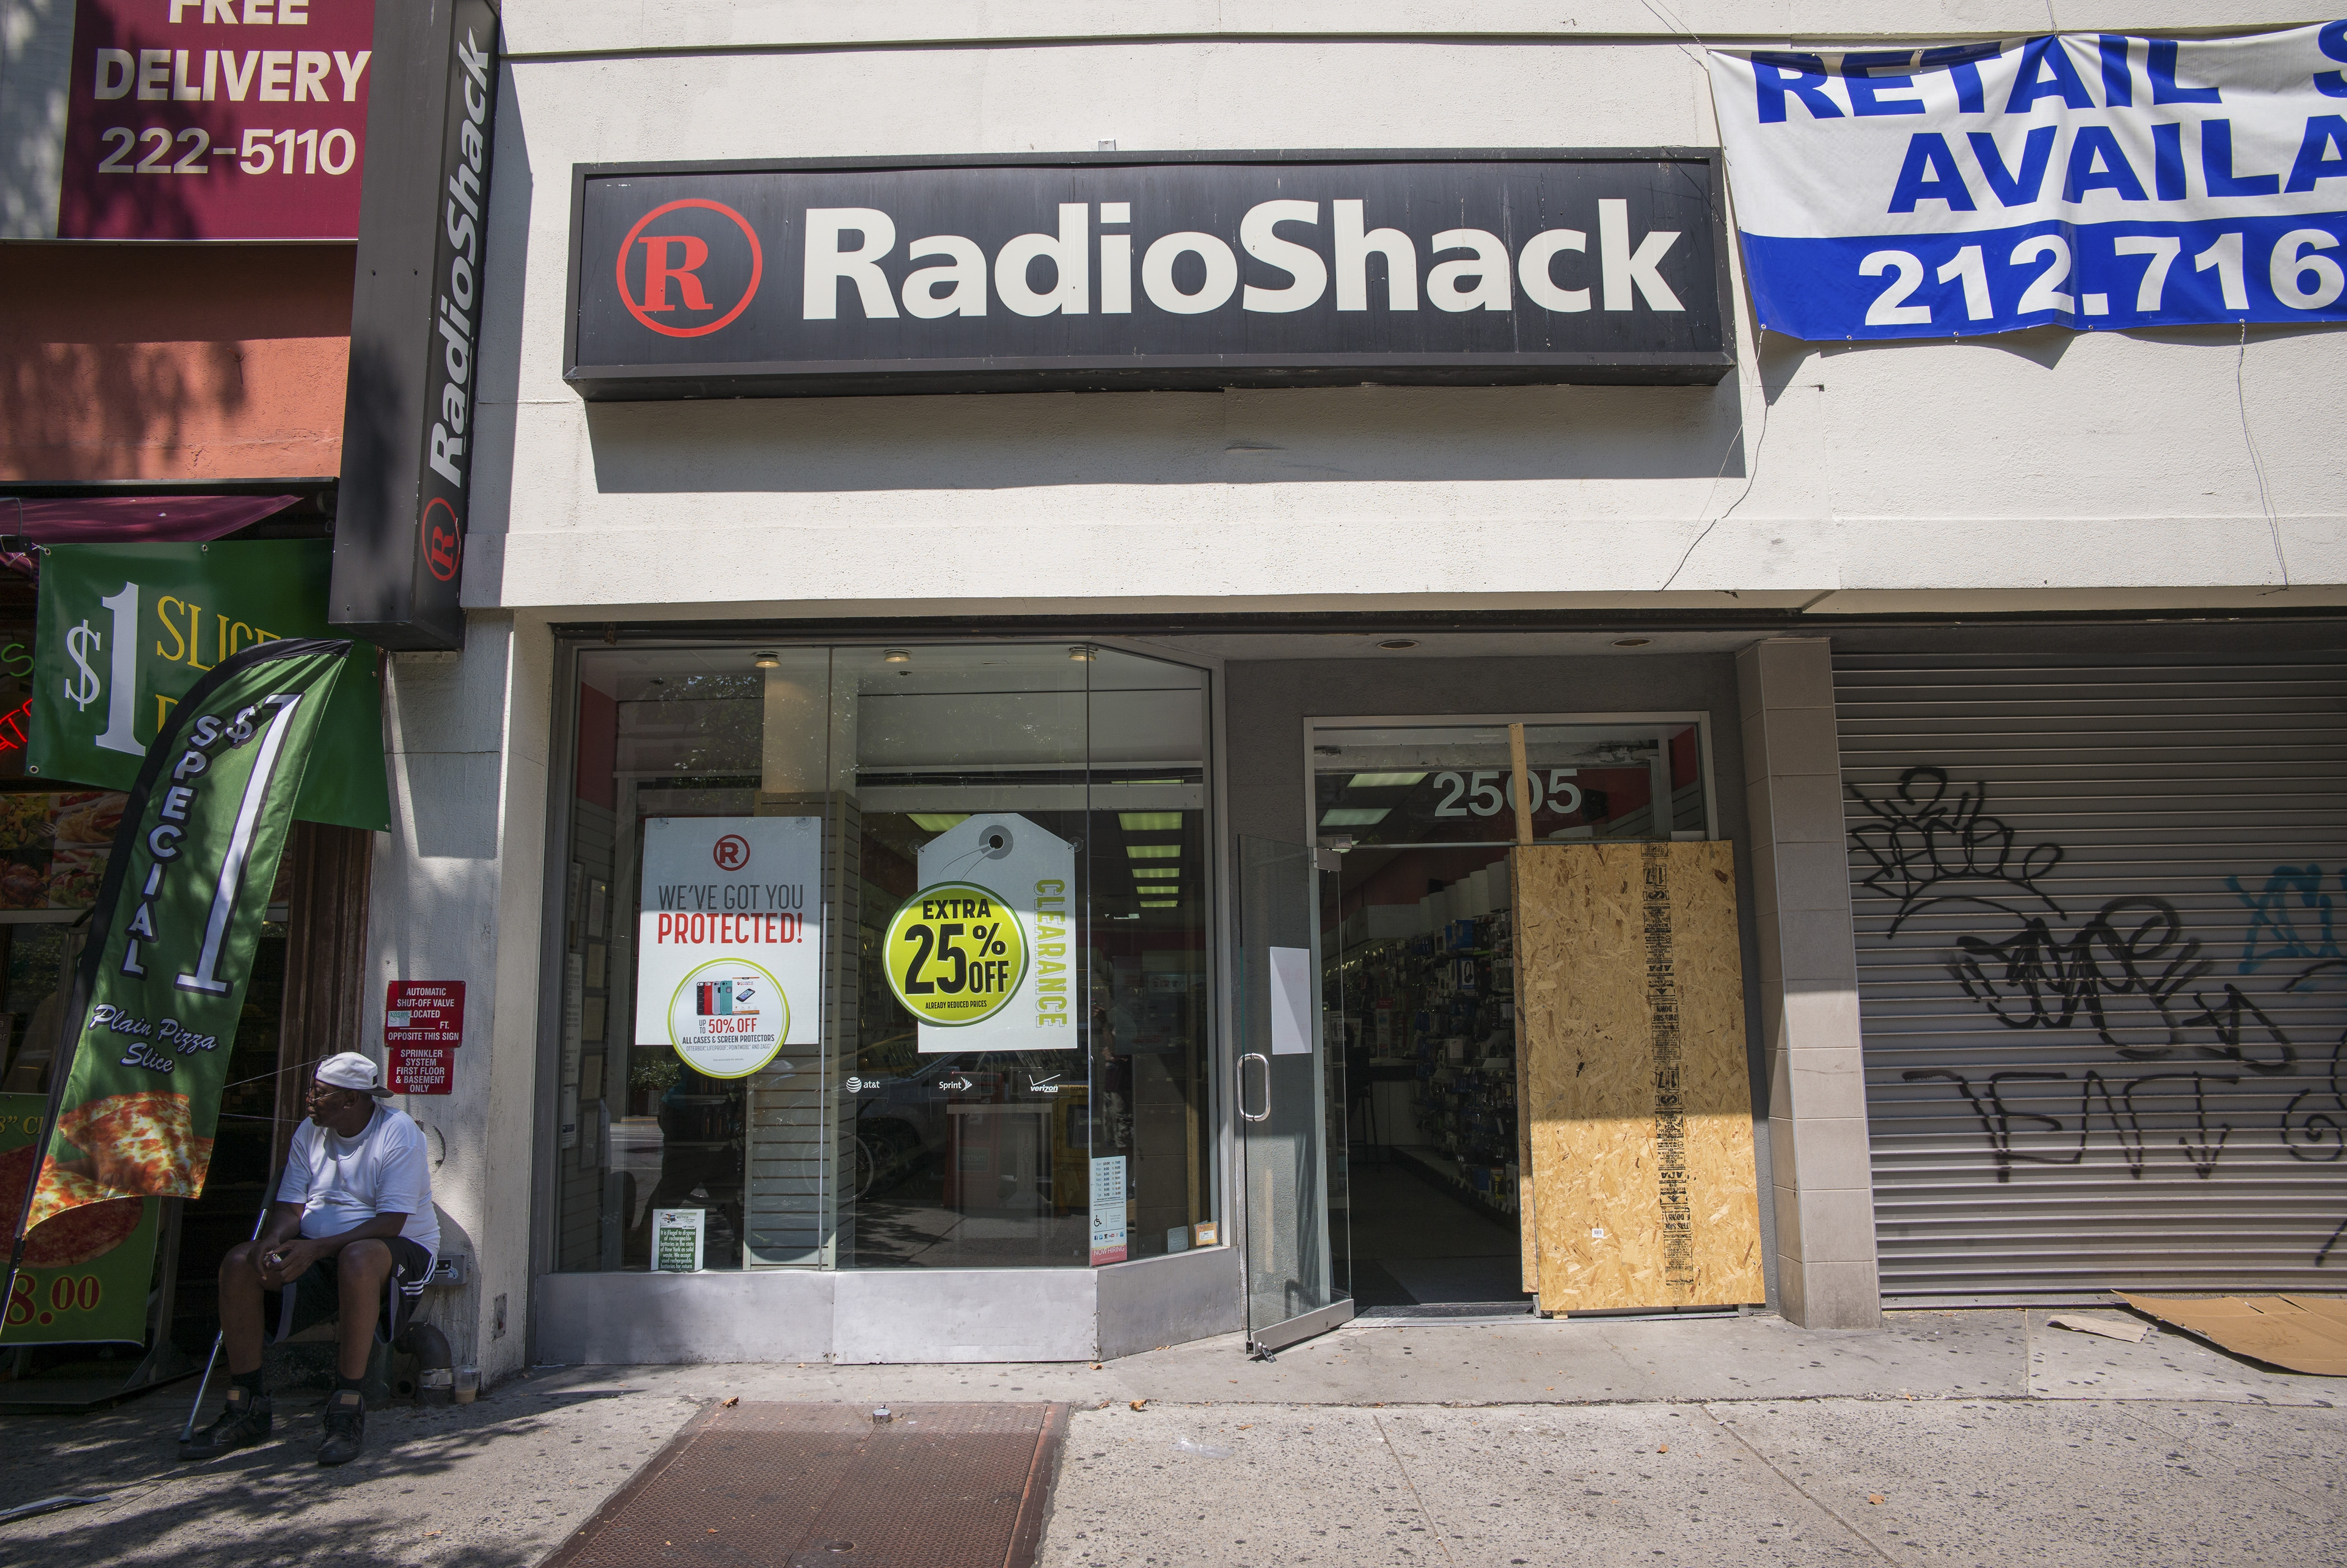 Radio Shack plans to cut more jobs and must come up with a viable business plan by Feb. 1.